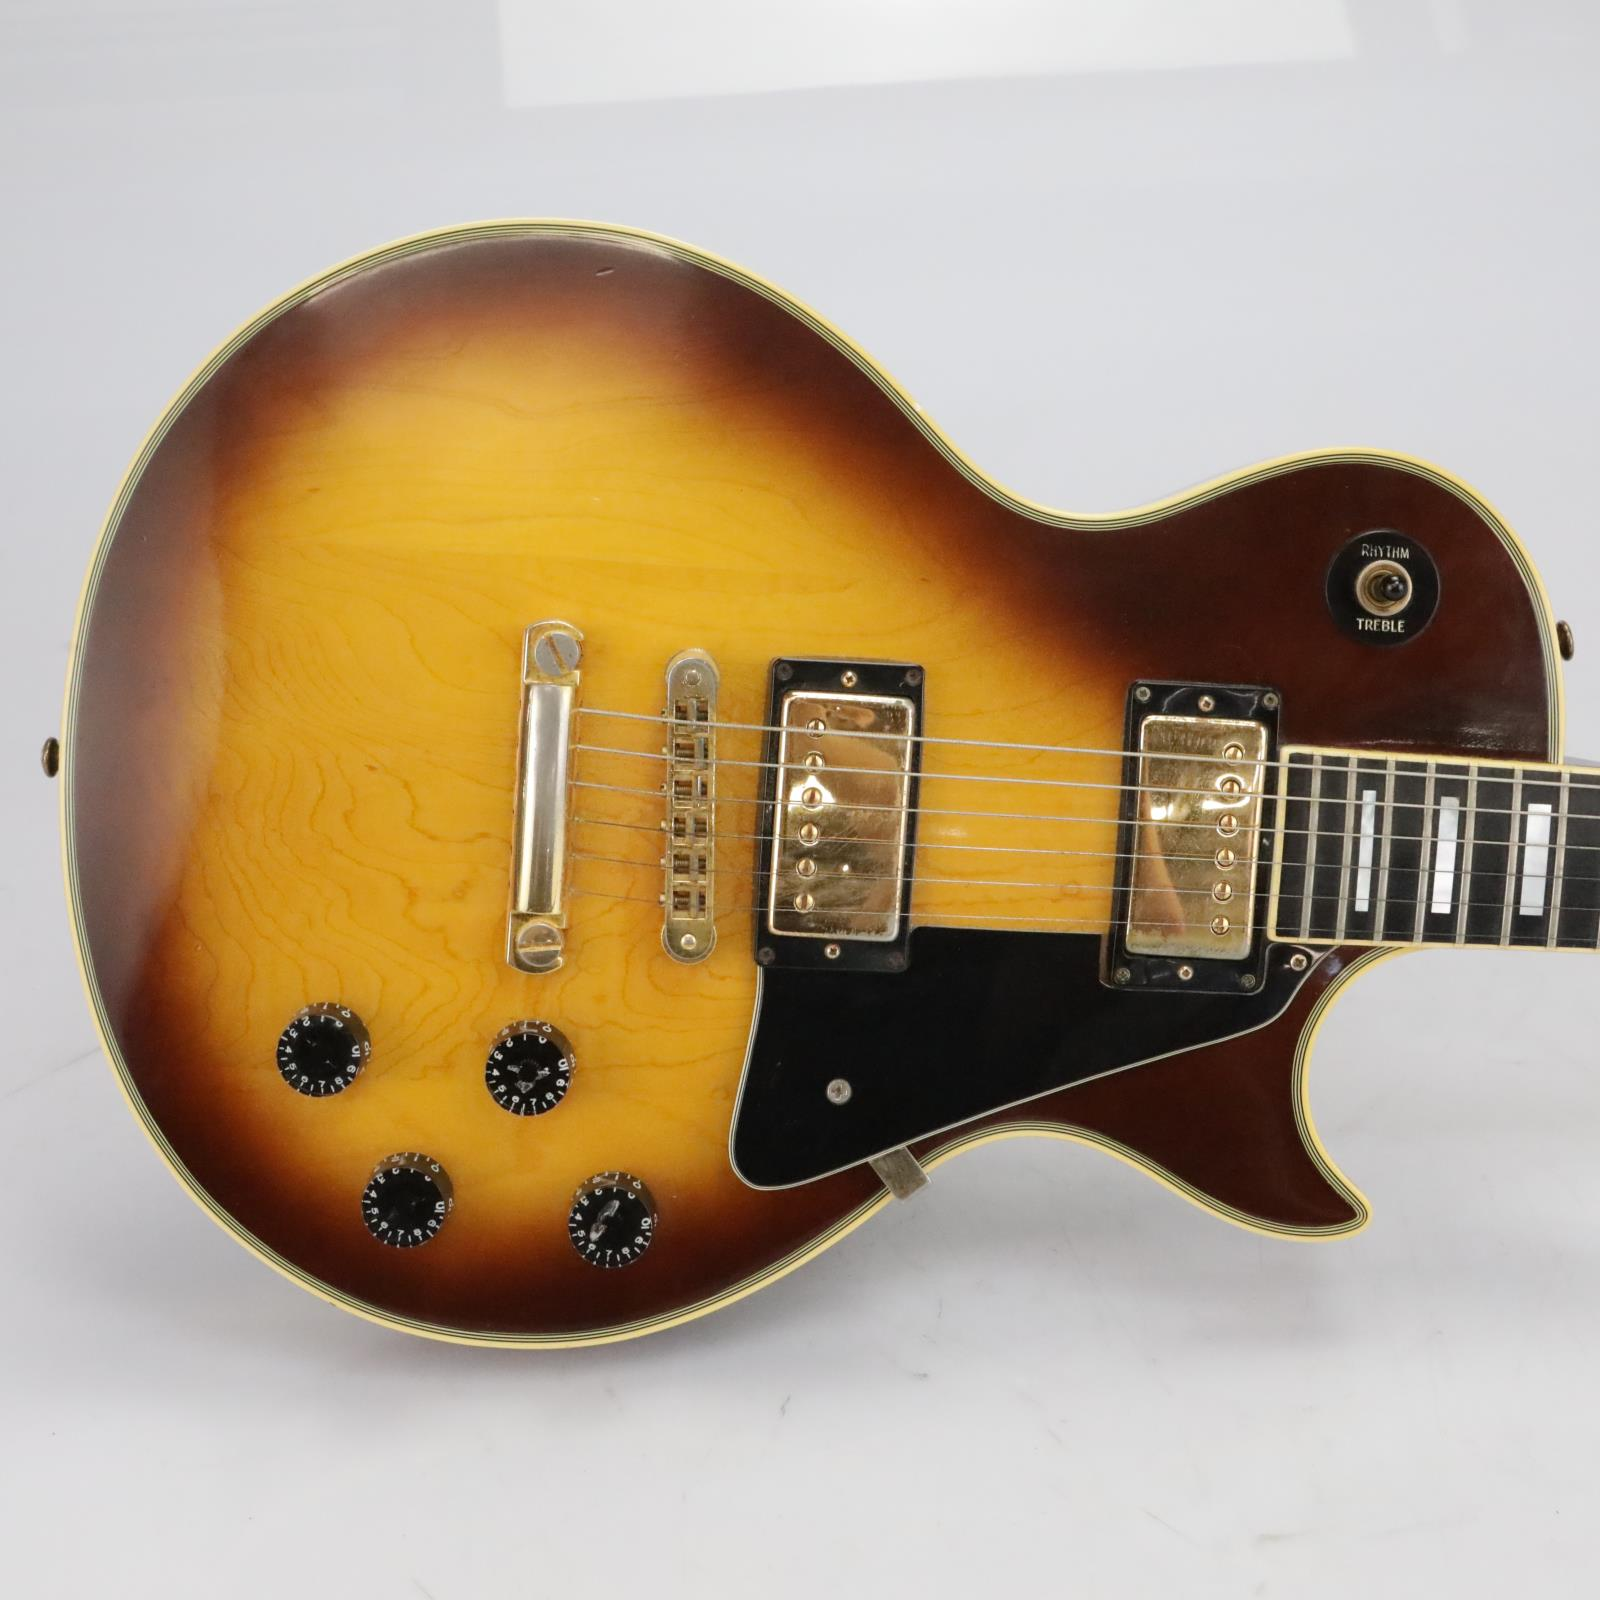 1979 Gibson Les Paul Custom Electric Guitar Tobacco Burst Gold Hardware #40500